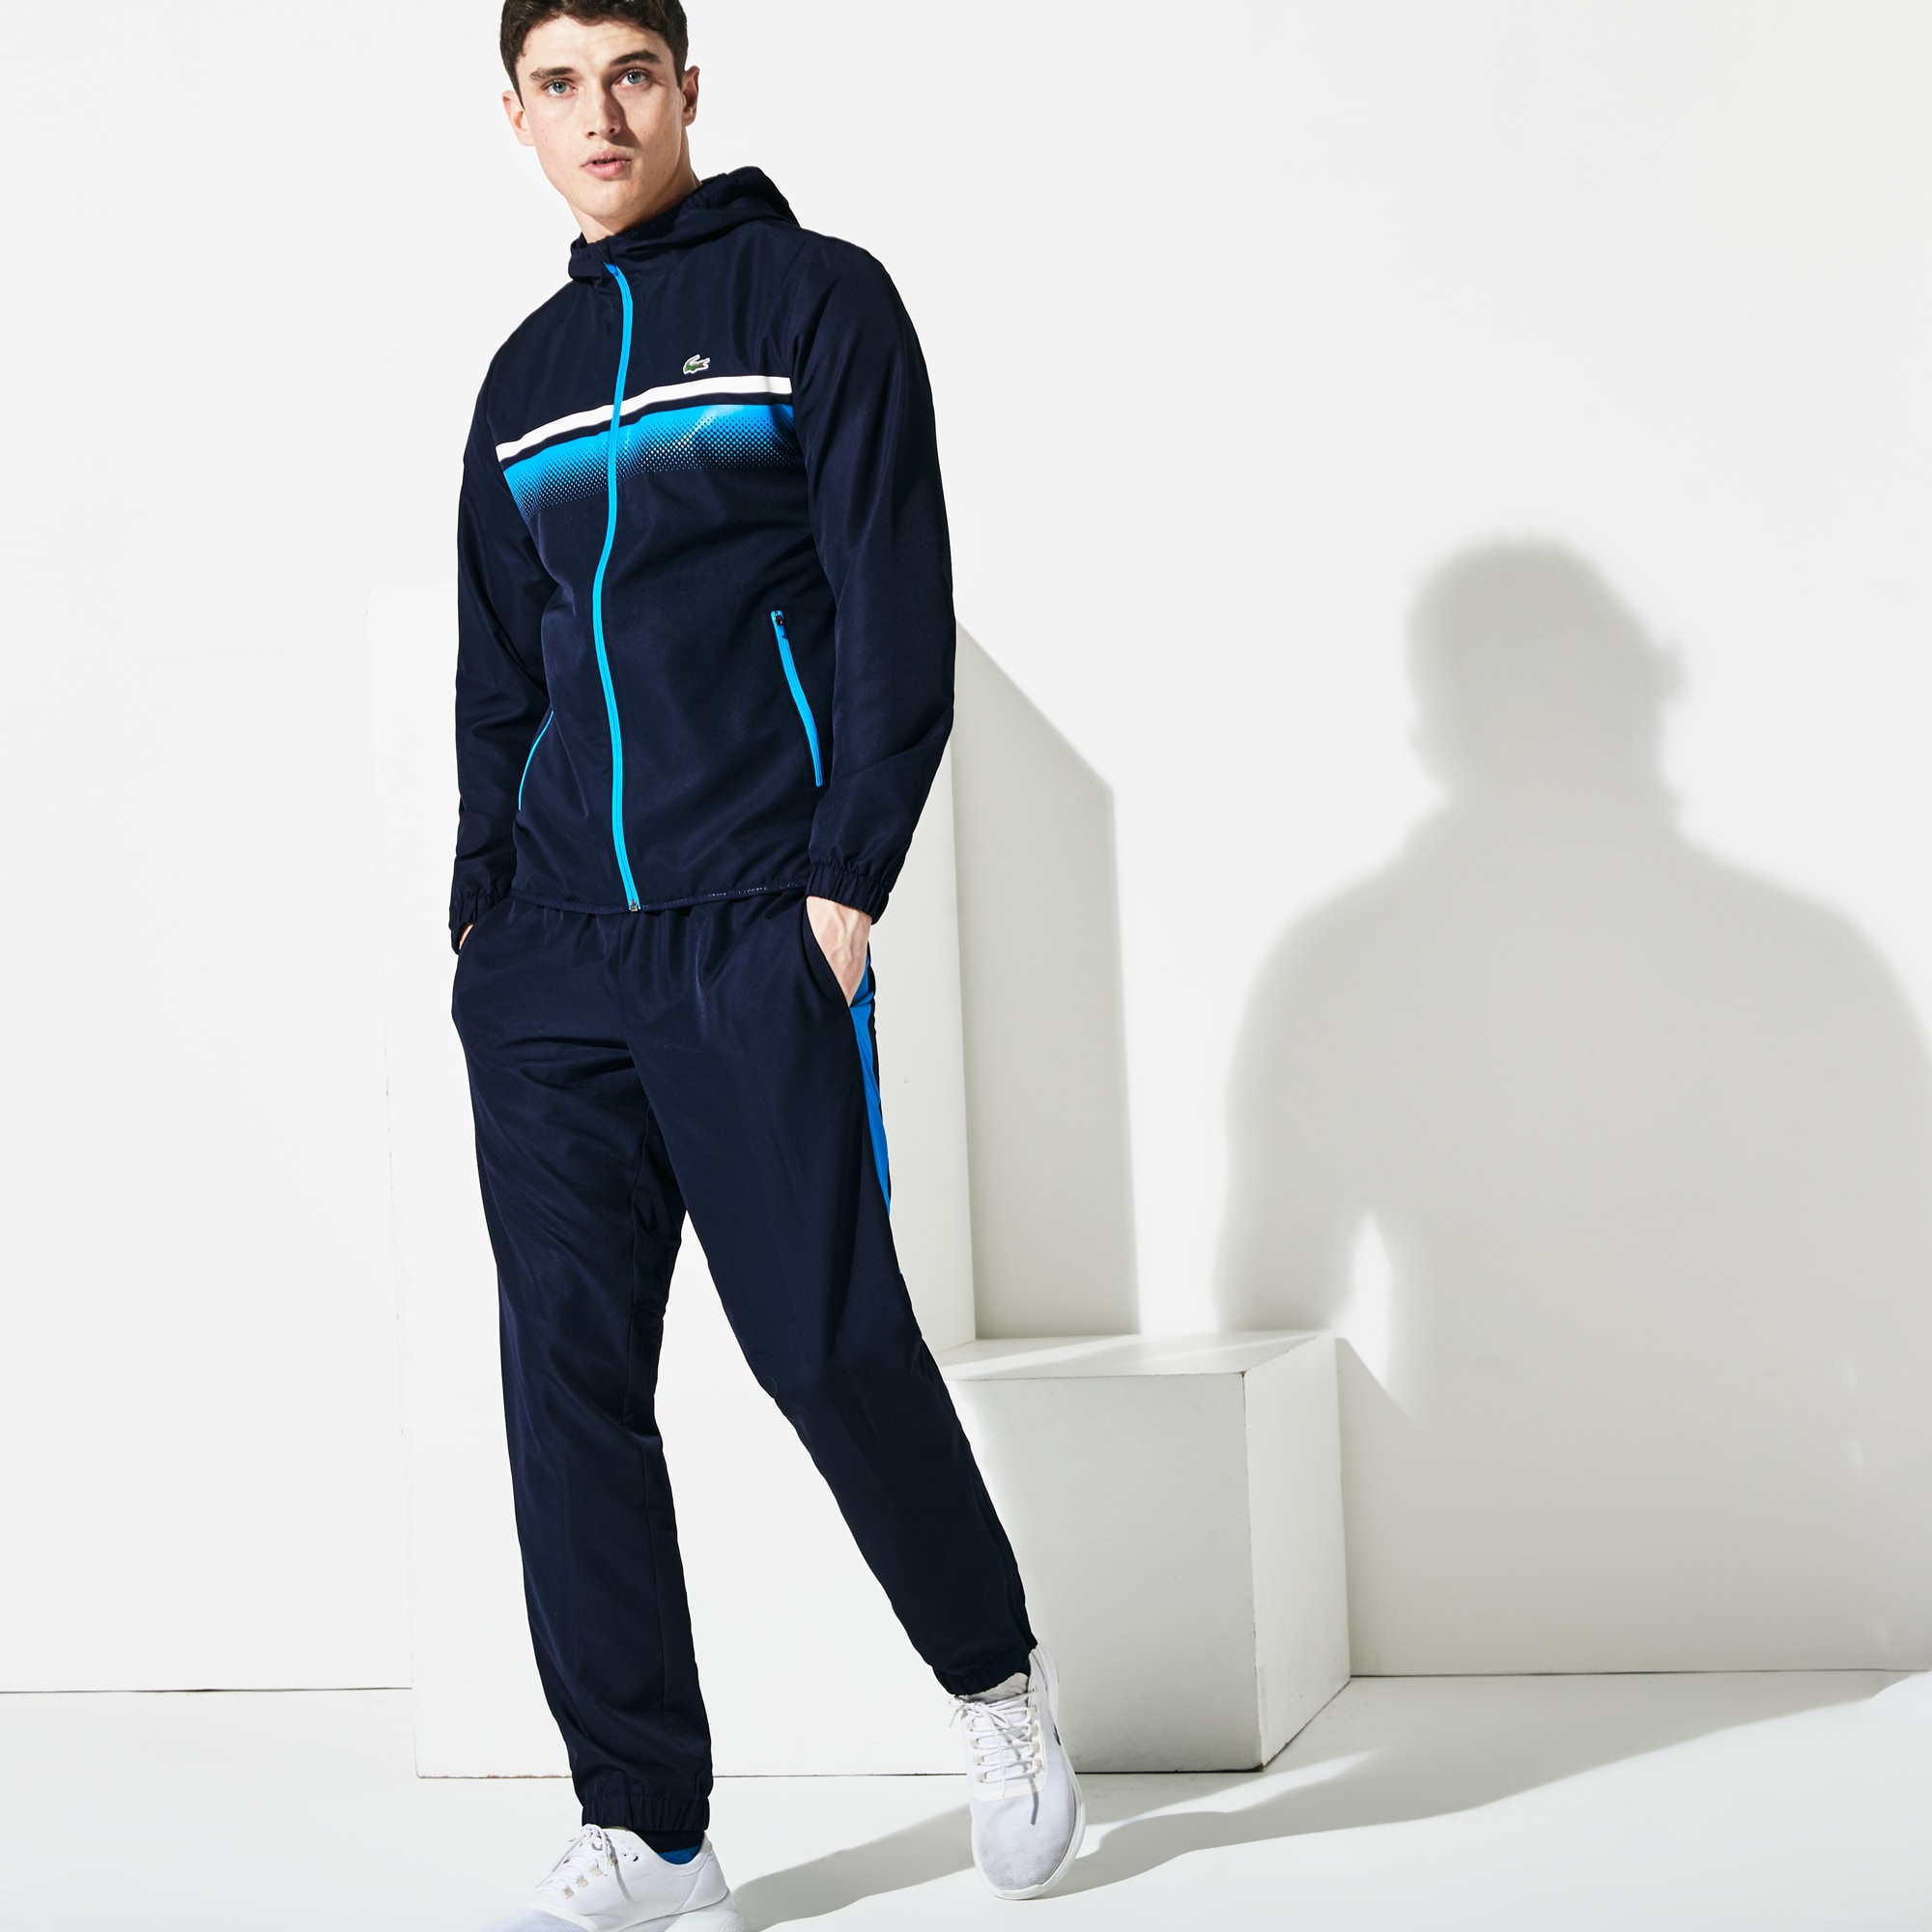 Lacoste Suits Men's SPORT Tennis Tracksuit